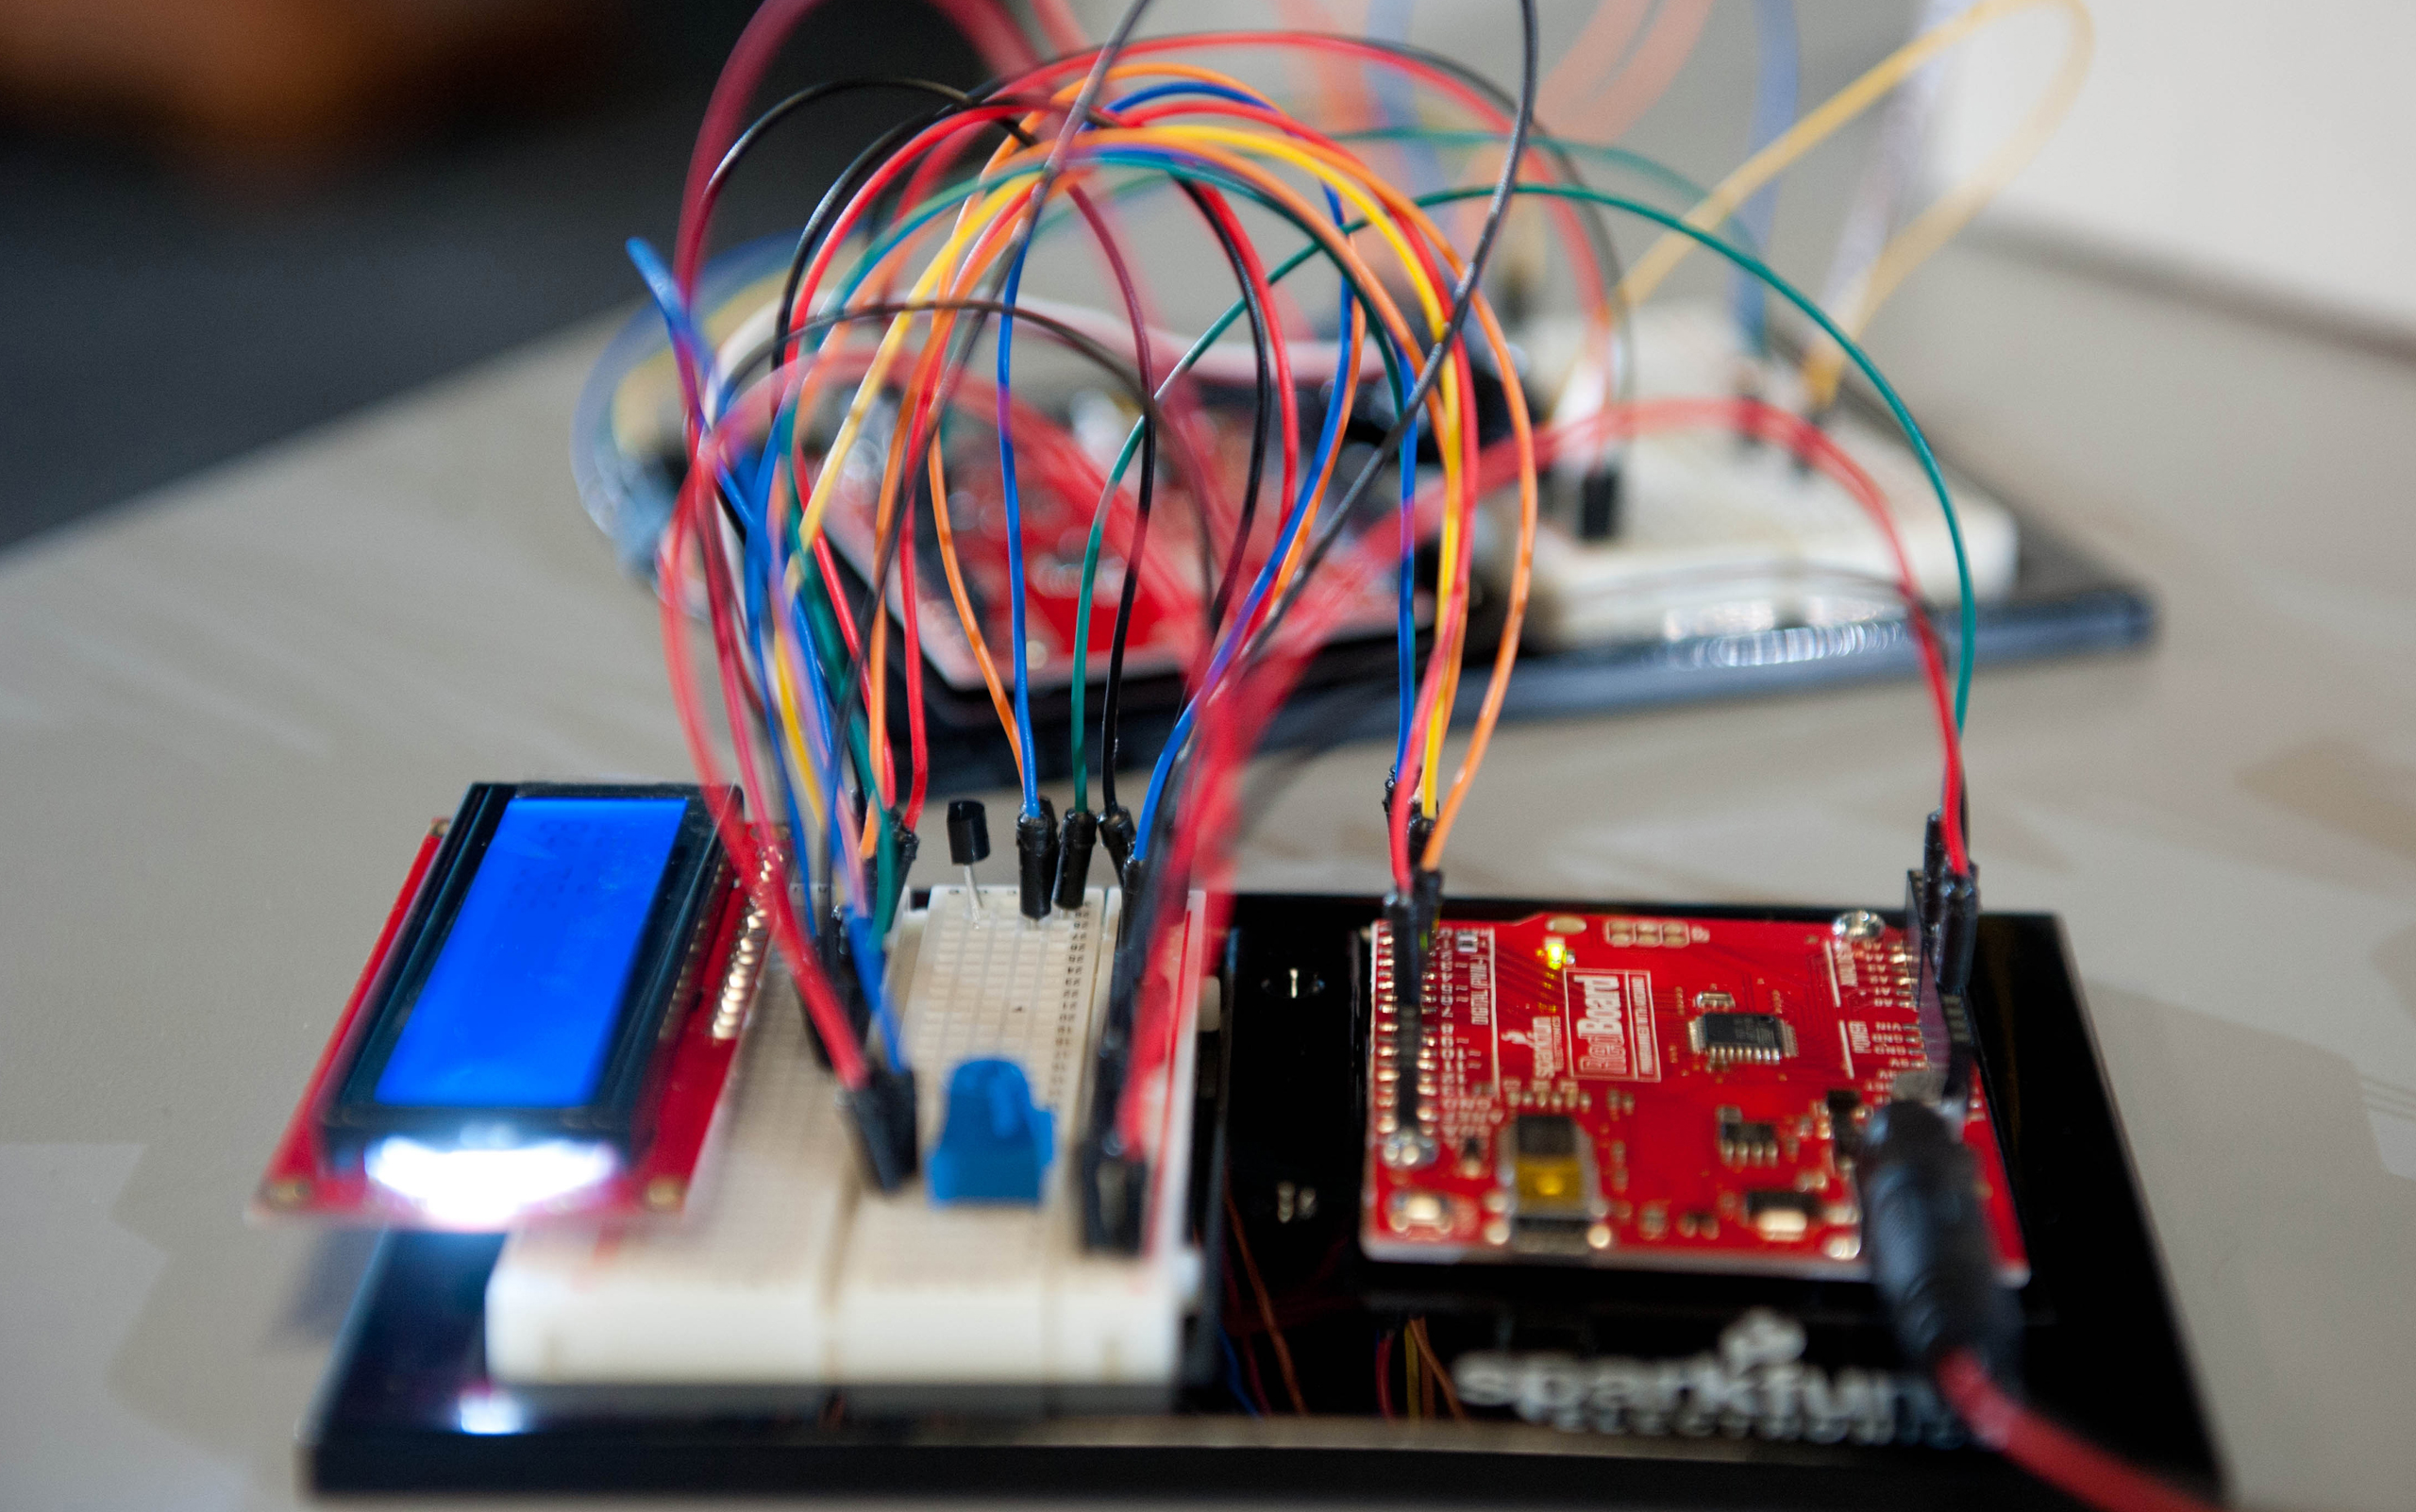 Learning With Makey Transforming Objects Innovative Wiring Its Programs Services And Spaces The Ncsu Libraries Has Long Demonstrated Commitment To Developing Emerging Literacies By Giving